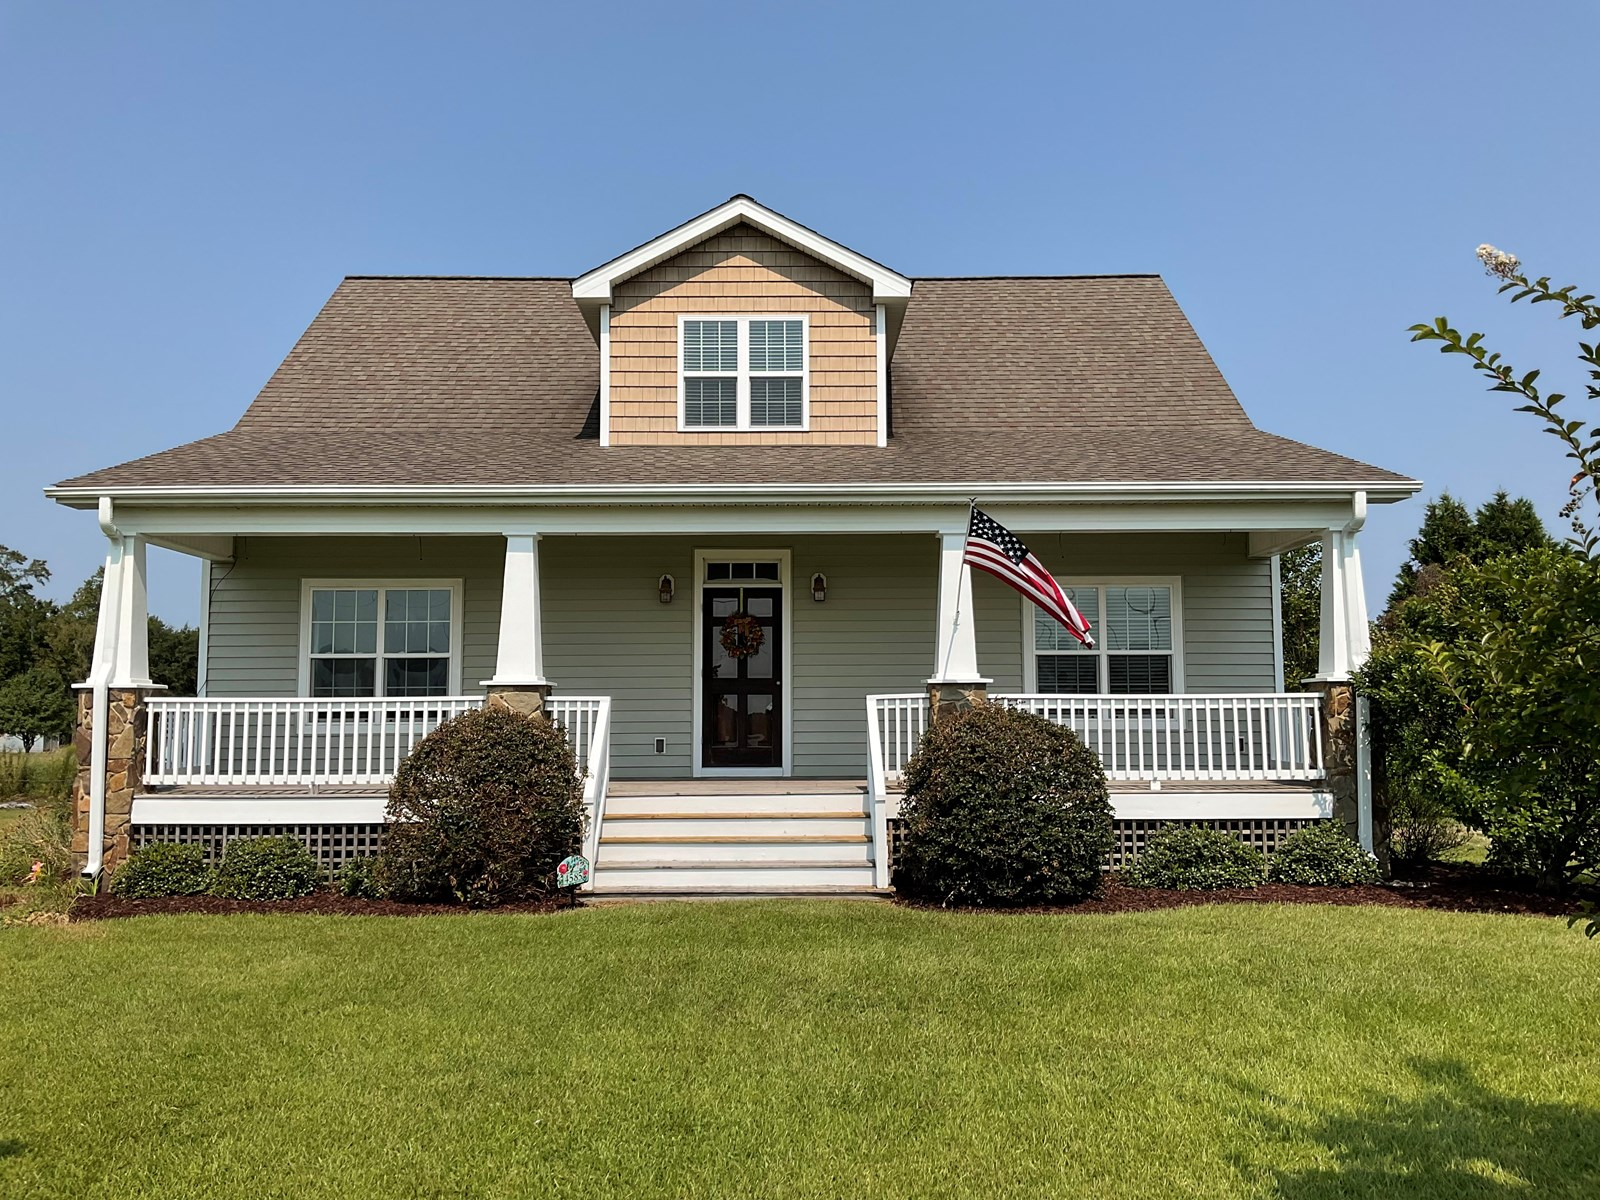 Country Home for Sale in Washington County, North Carolina